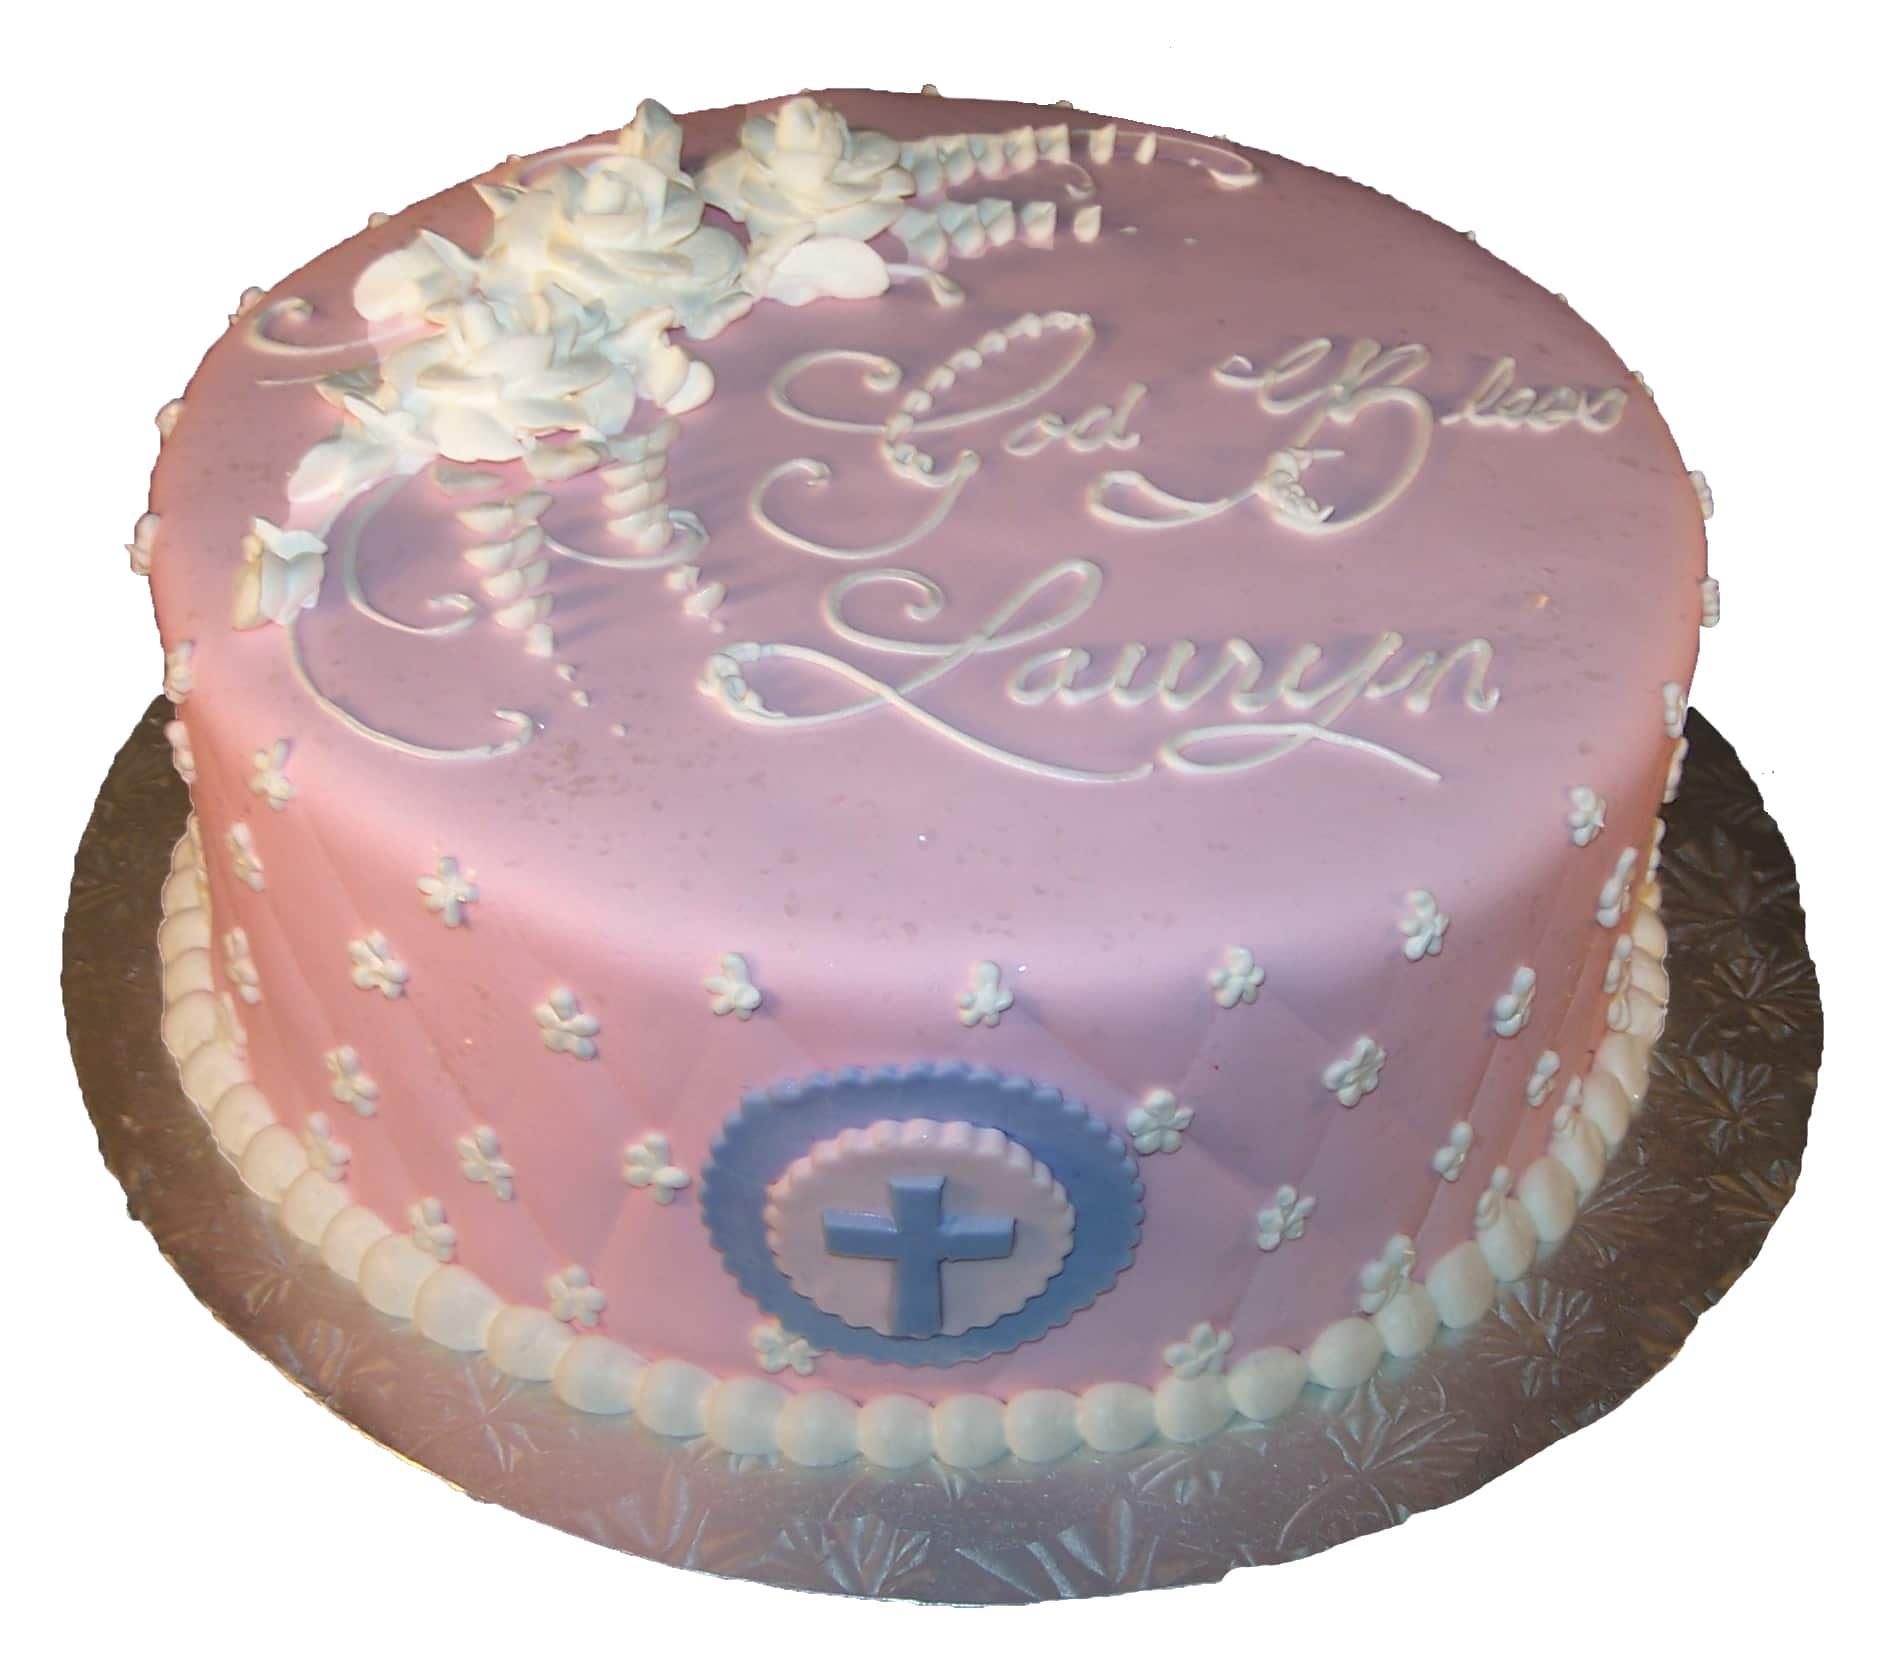 Remarkable Religious Cake 5 Aggies Bakery Cake Shop Funny Birthday Cards Online Overcheapnameinfo